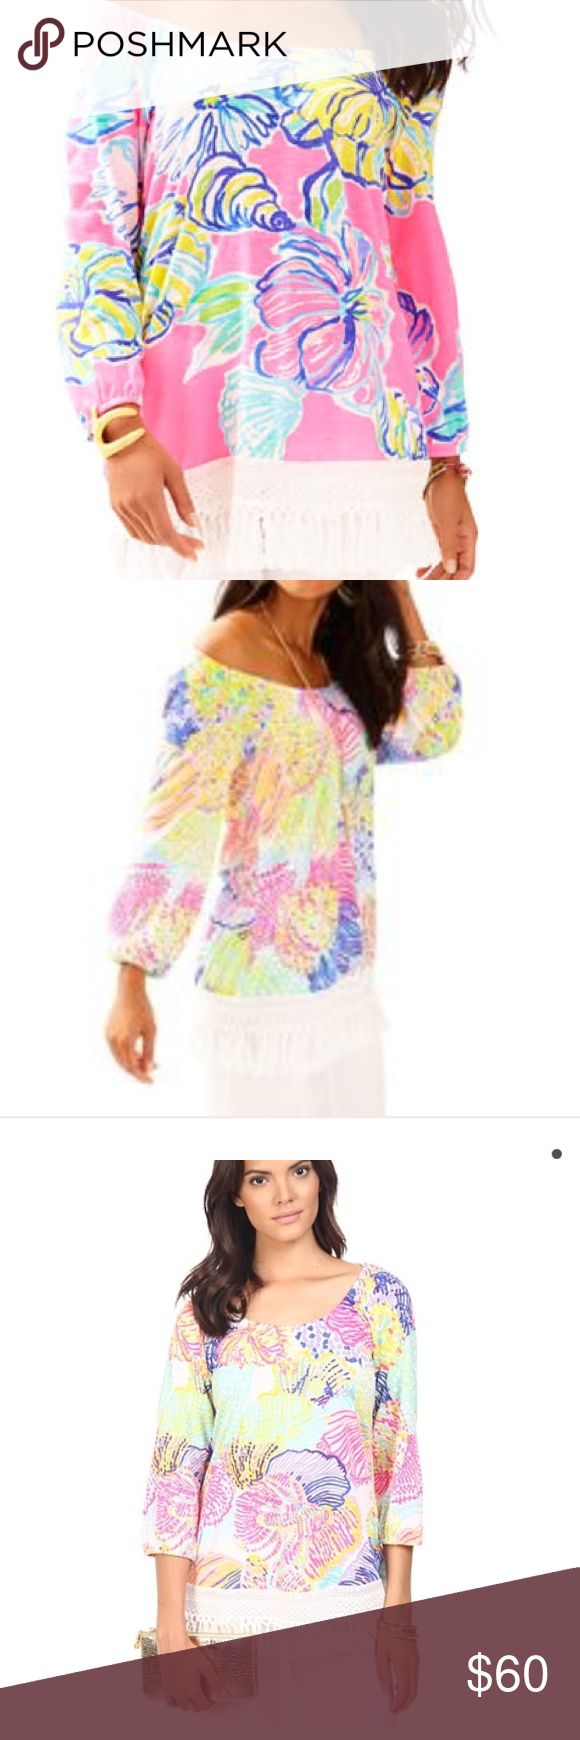 Lilly Pulitzer Alia Top BRAND NEW! The Alia printed top will take you from the beach to happy hour in the chicest way possible. So head to the cabana bar and order two daiquiris, we'll be there soon! Scoop Neck Top With ¾ Length Sleeve, Scoop Neckline, And Fringed Trimmed Hem. Cotton Slub Jersey - Printed (100% Cotton). Machine Wash Cold, Delicate Cycle. Imported. Lilly Pulitzer Tops Blouses